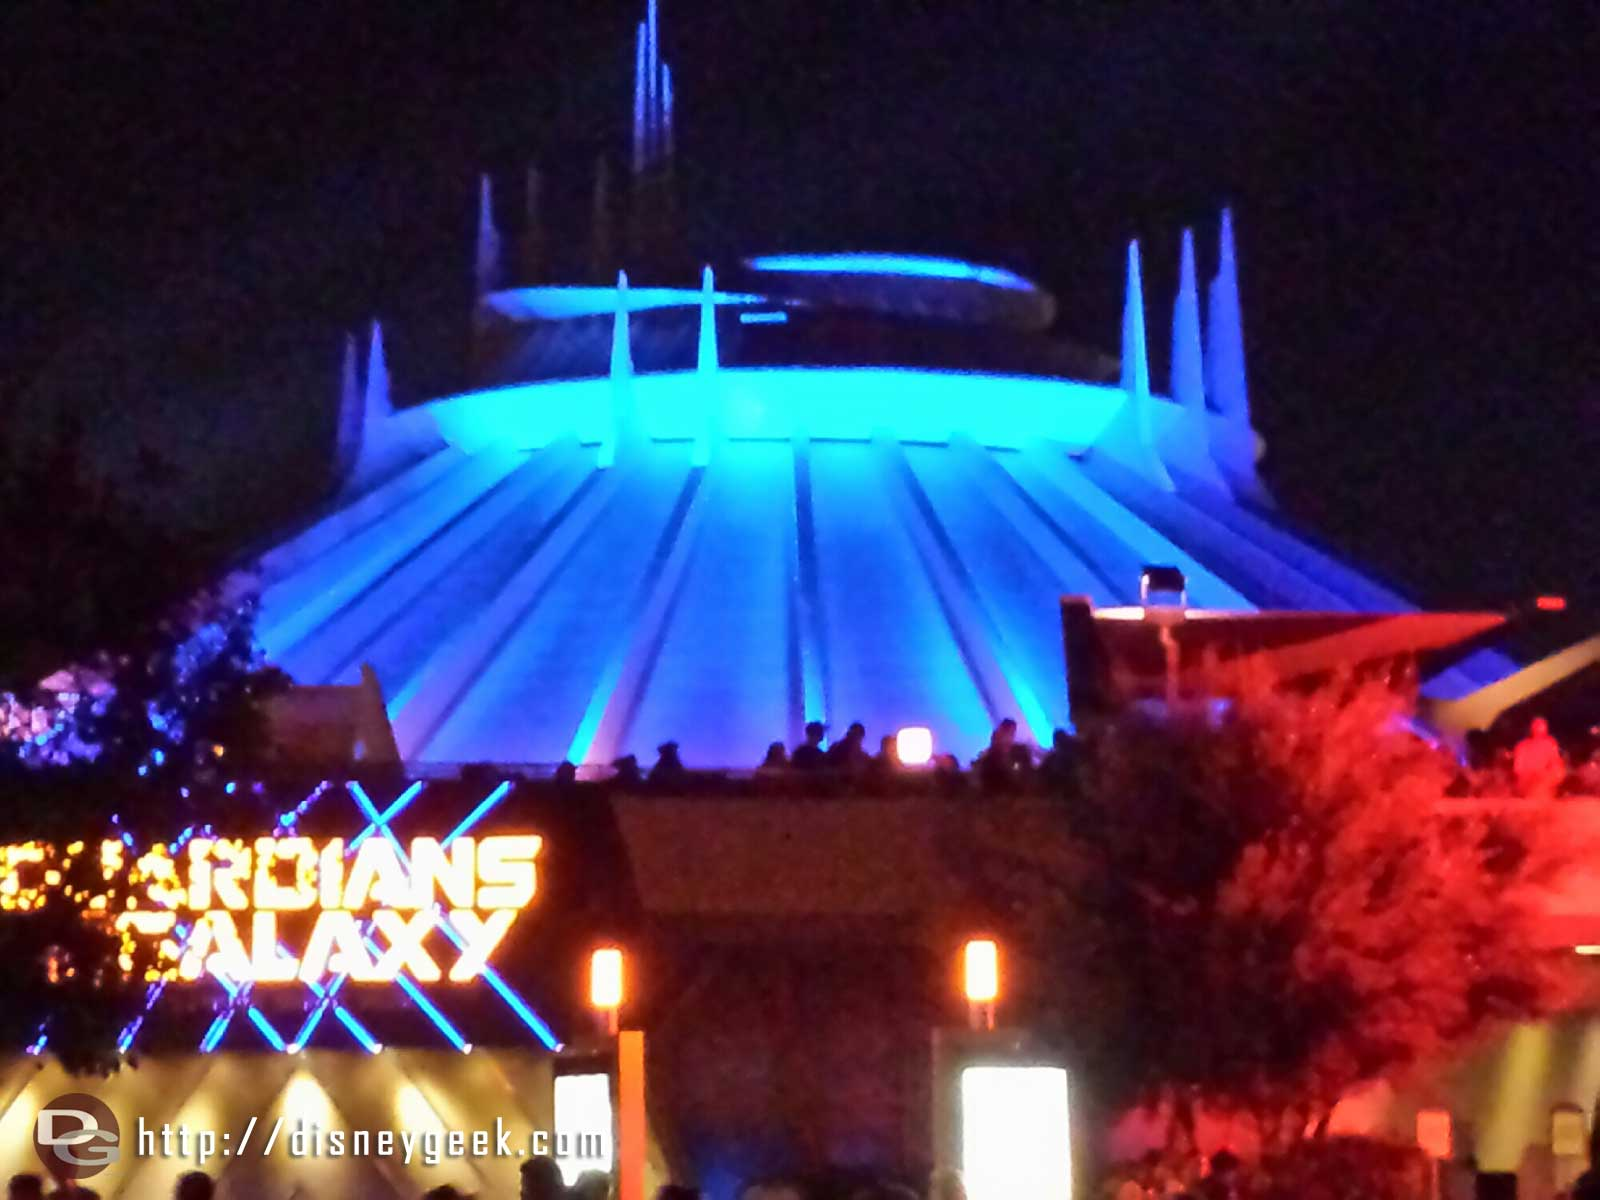 No projections or audio outside Ghost Galaxy right now.  Actually no background music at all in the area.